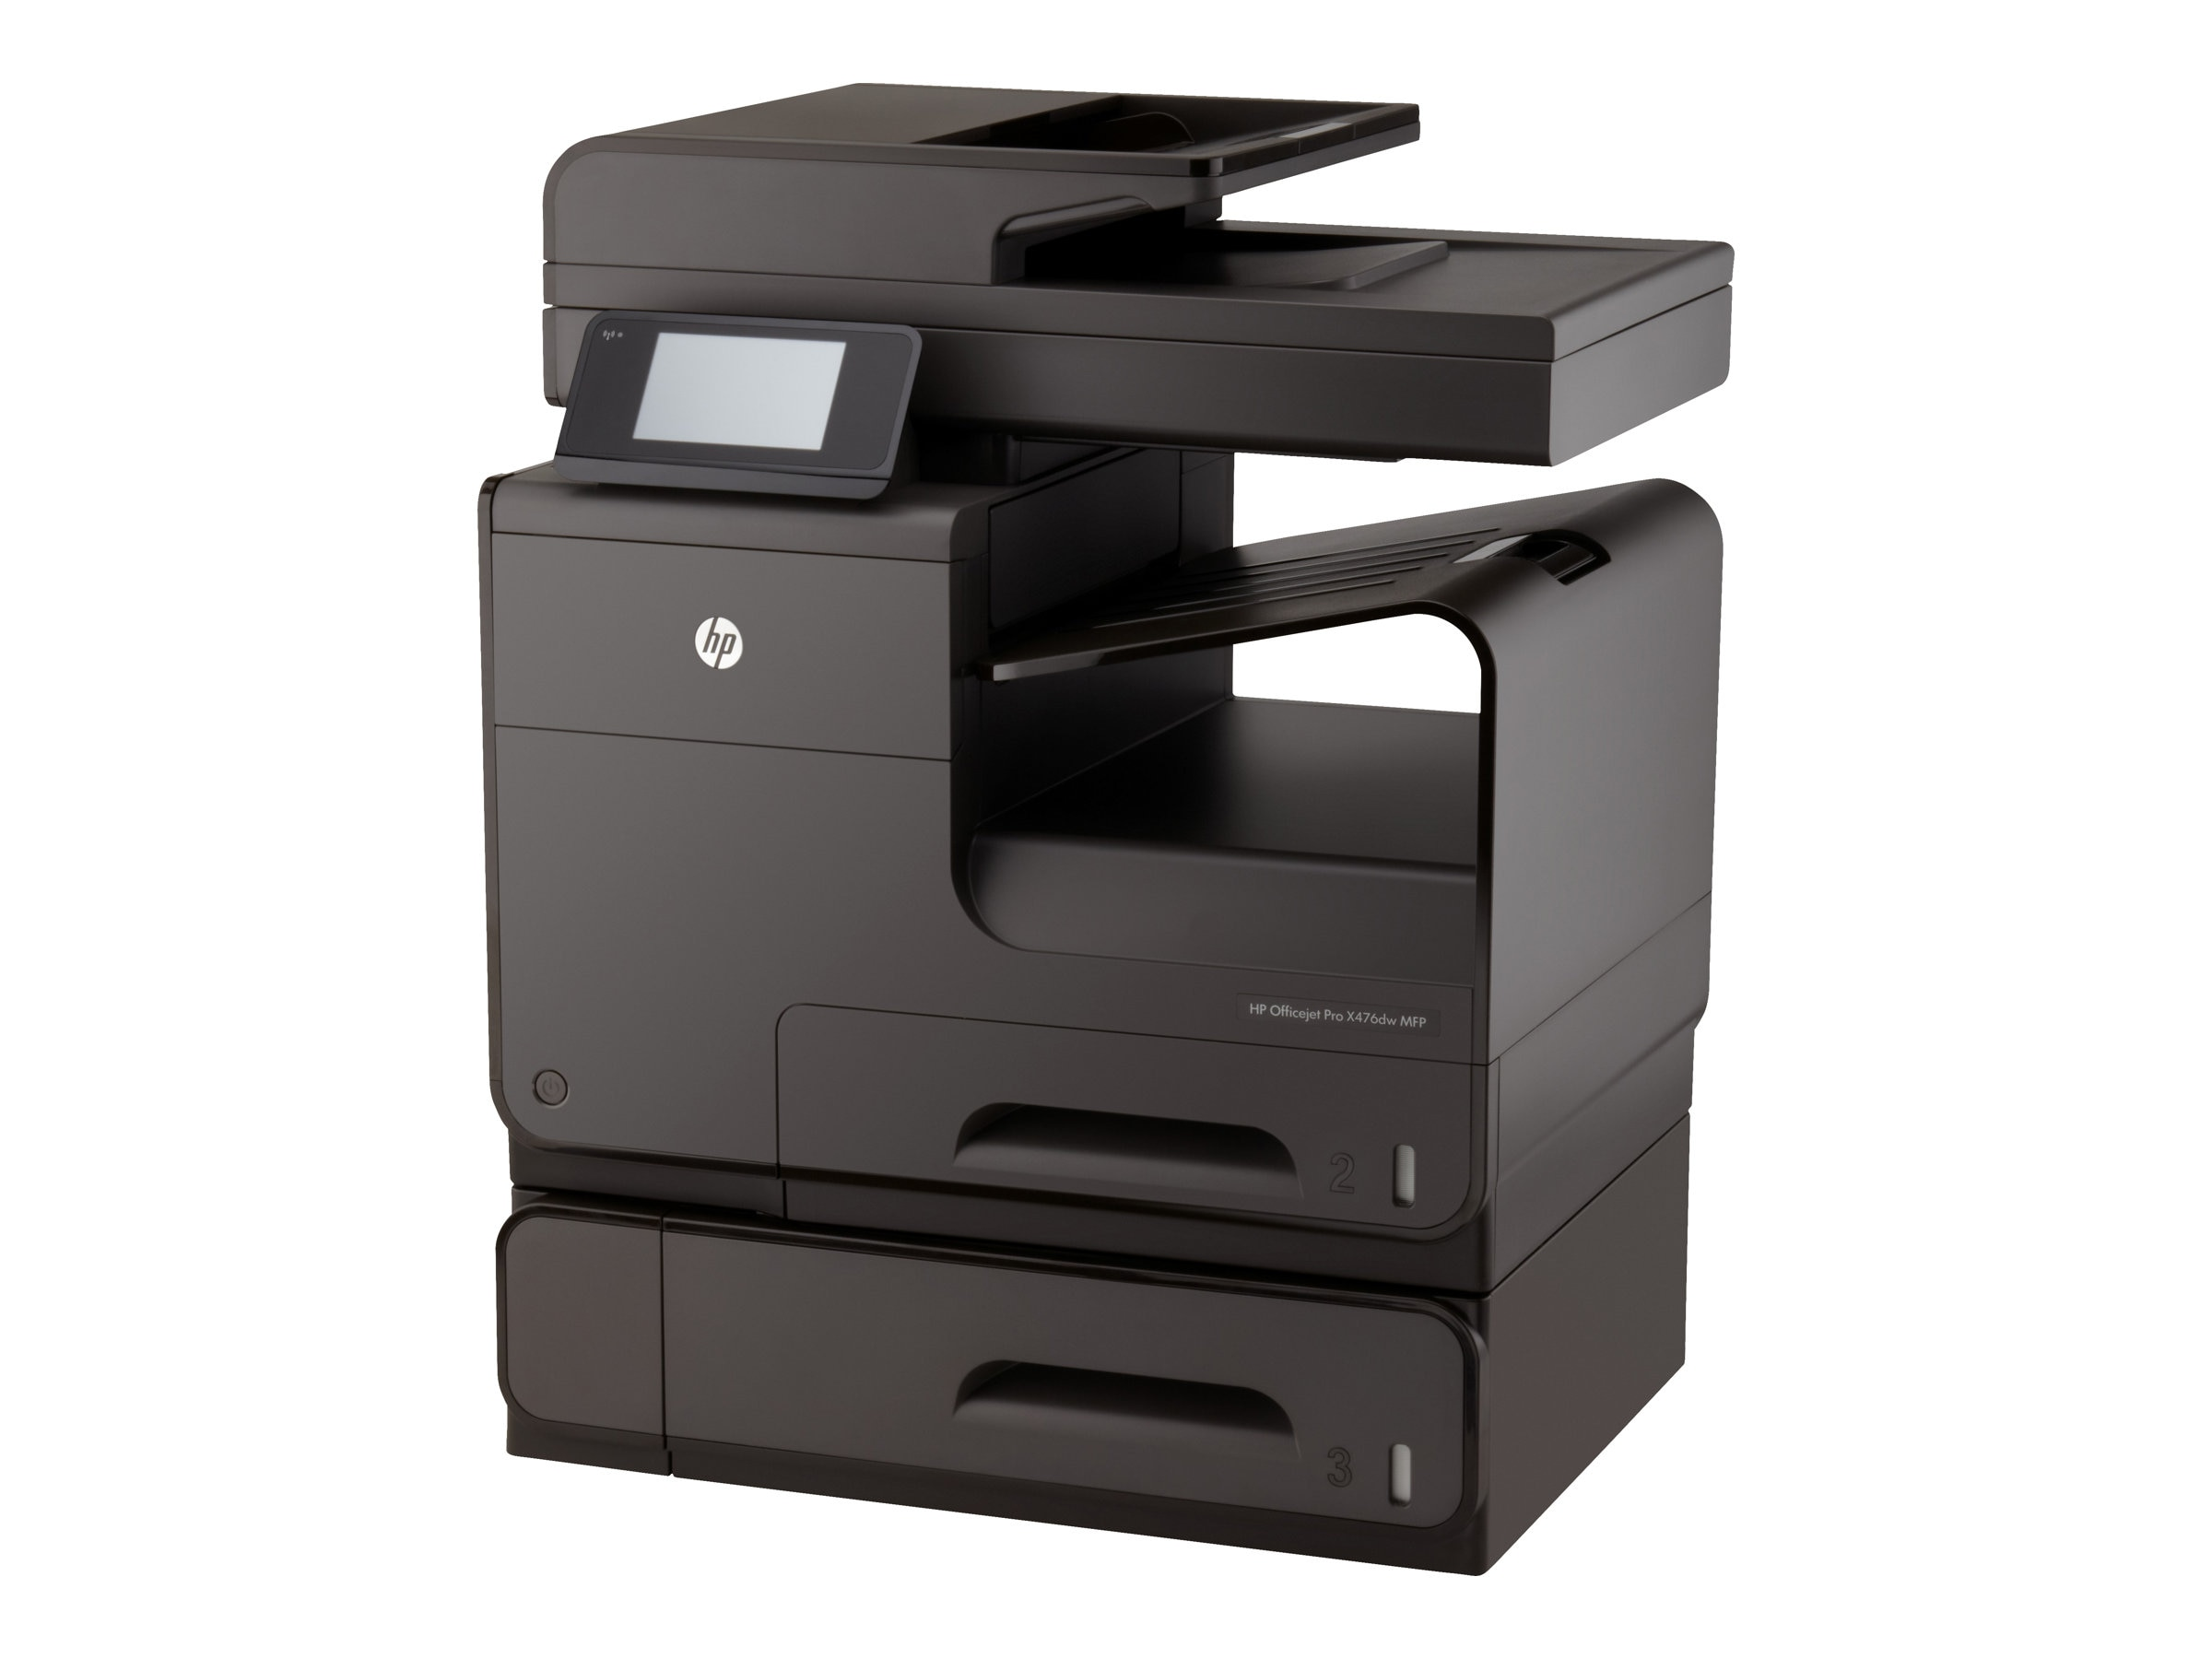 HP Officejet Pro X Series X 476dw Color MFP, CN461A#B1H